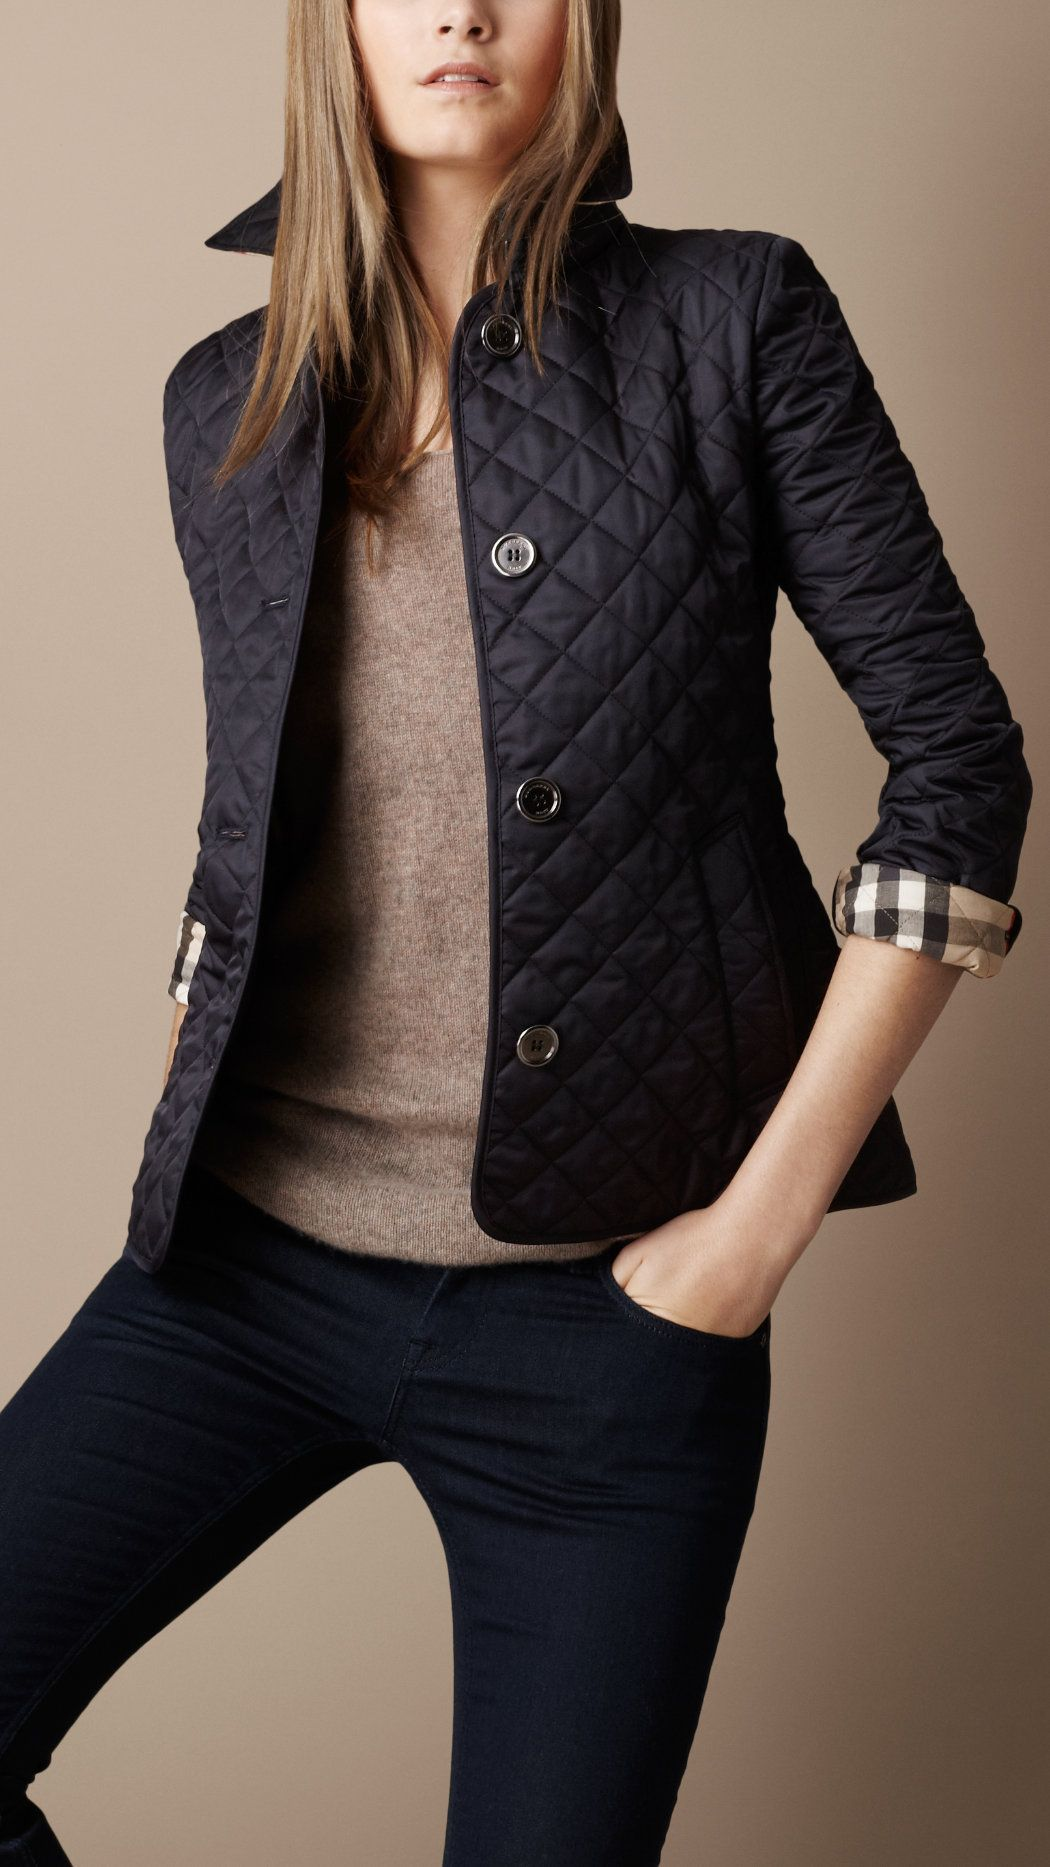 product quilt women brit in s previously bloomingdale black at clothing kencott burberry normal coats gallery lyst sold quilted jacket